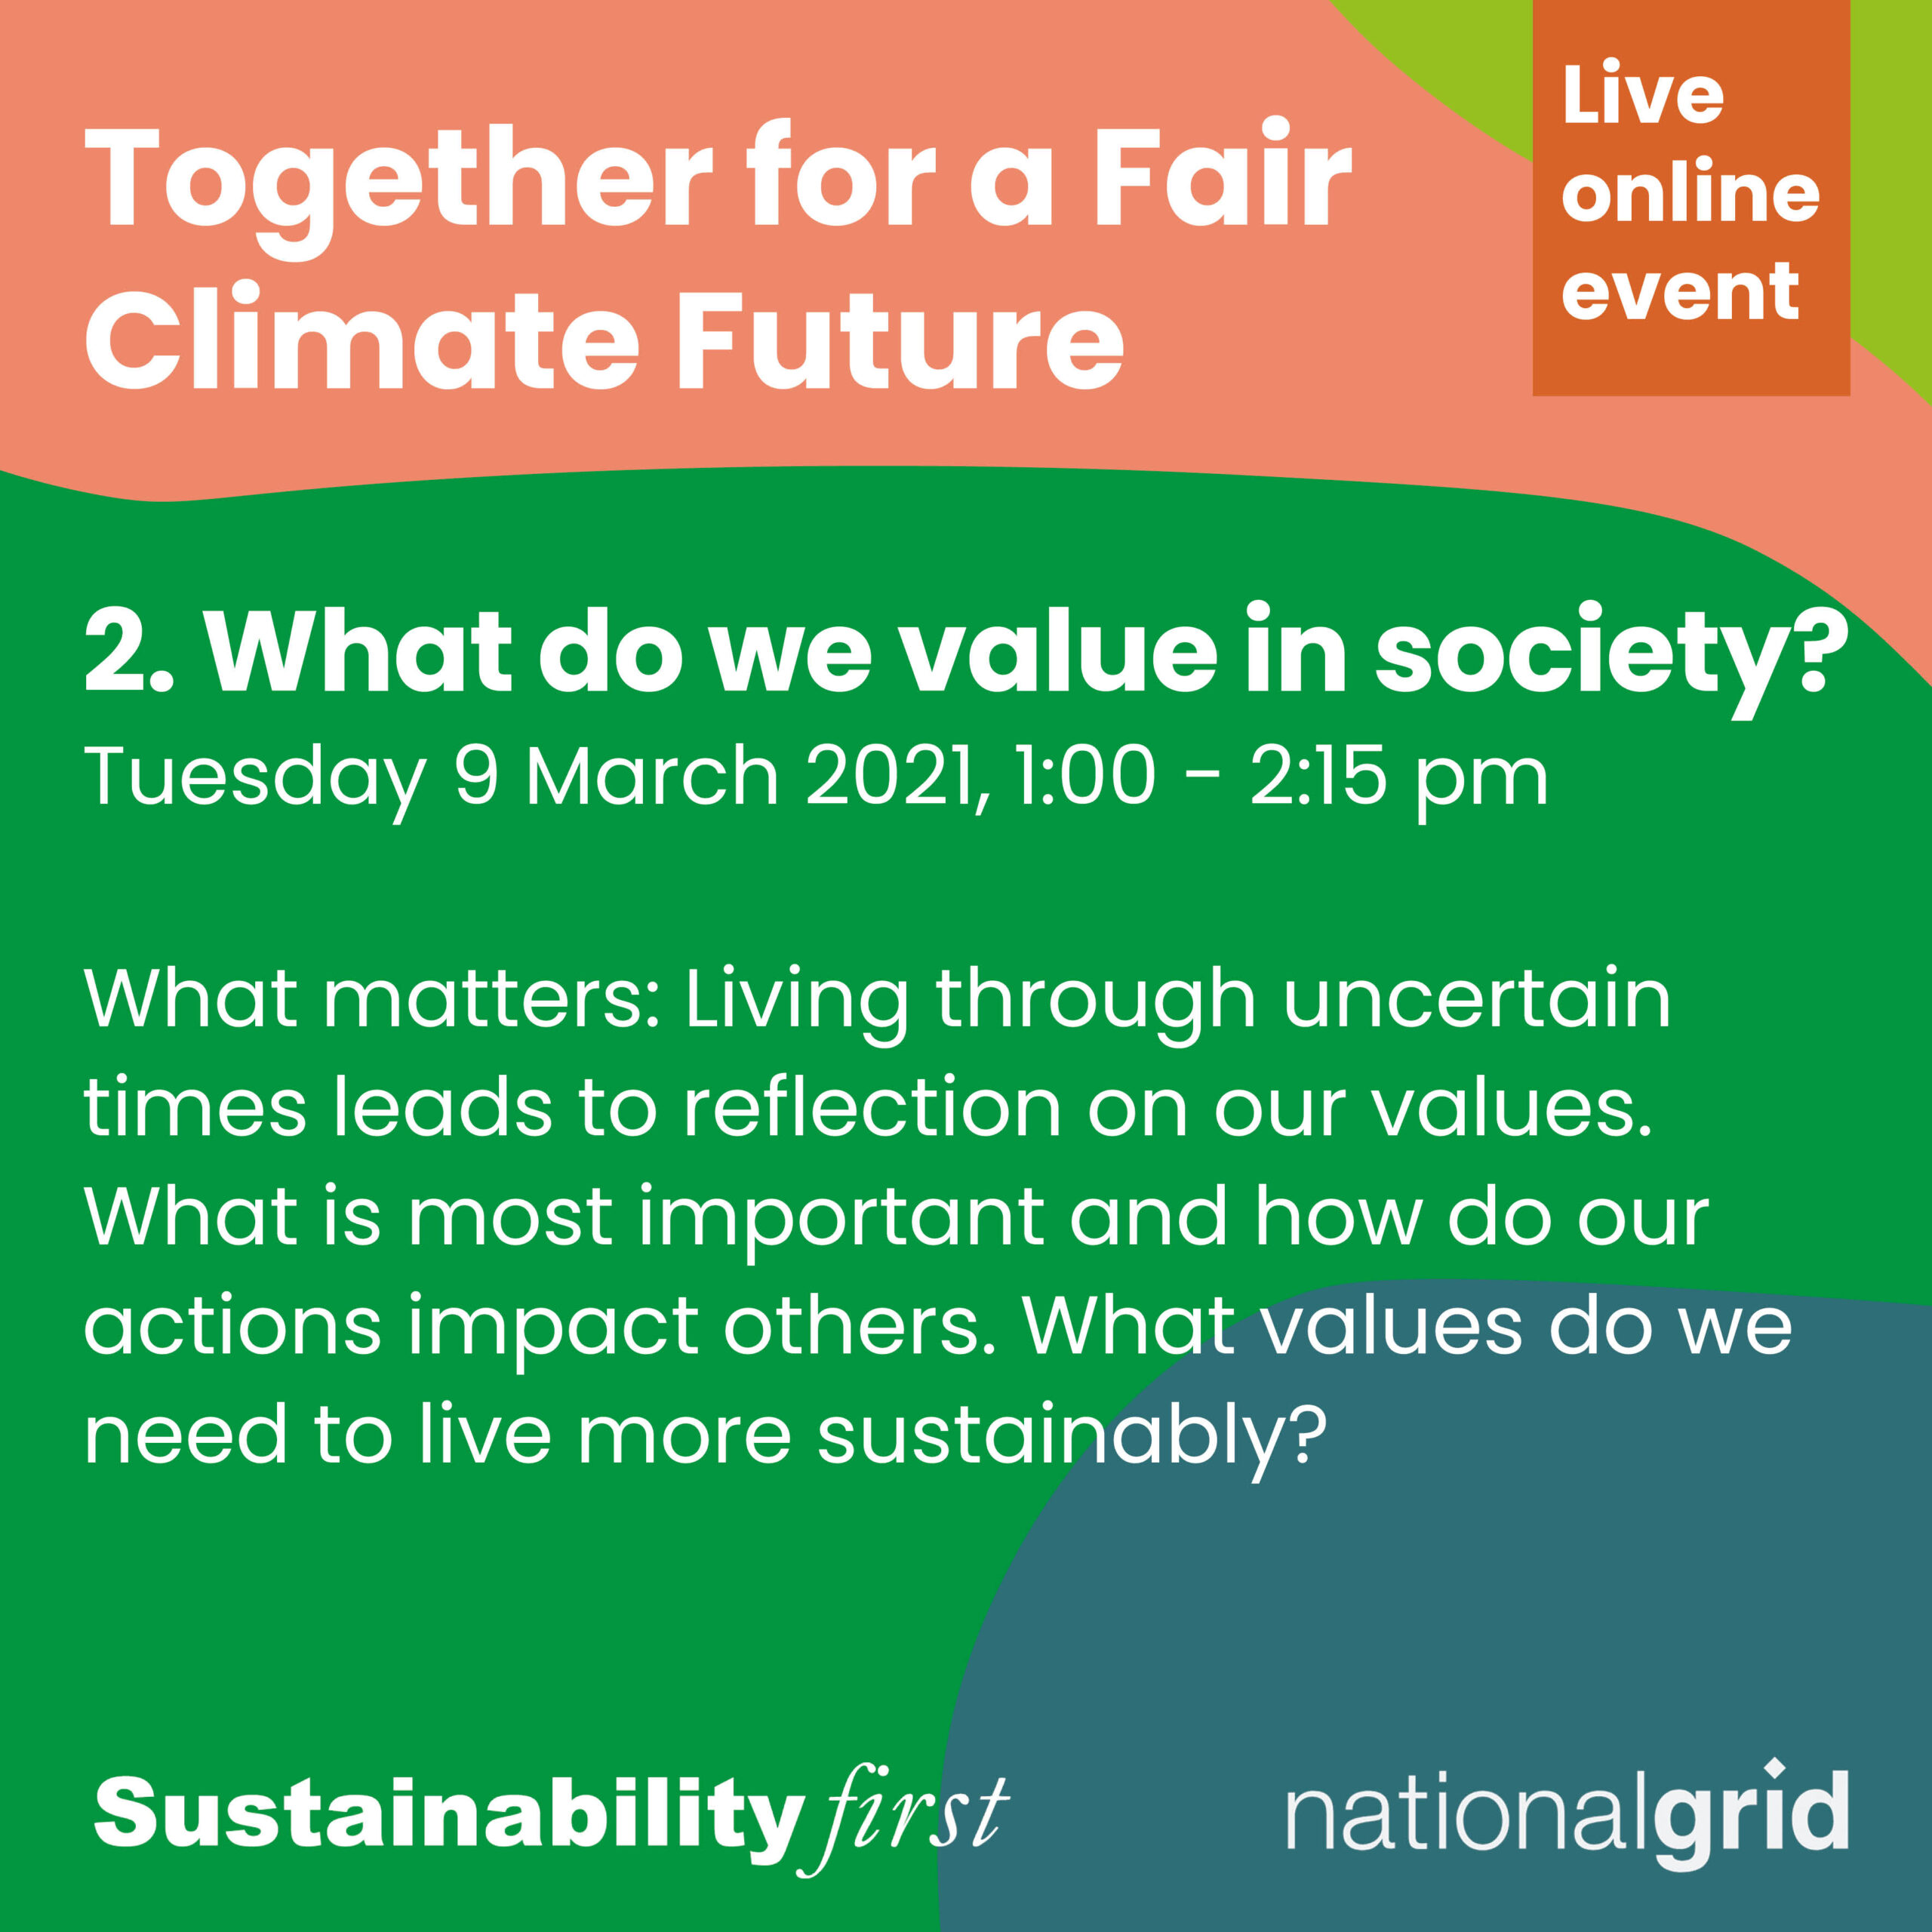 What do we value? Together for a fair climate future